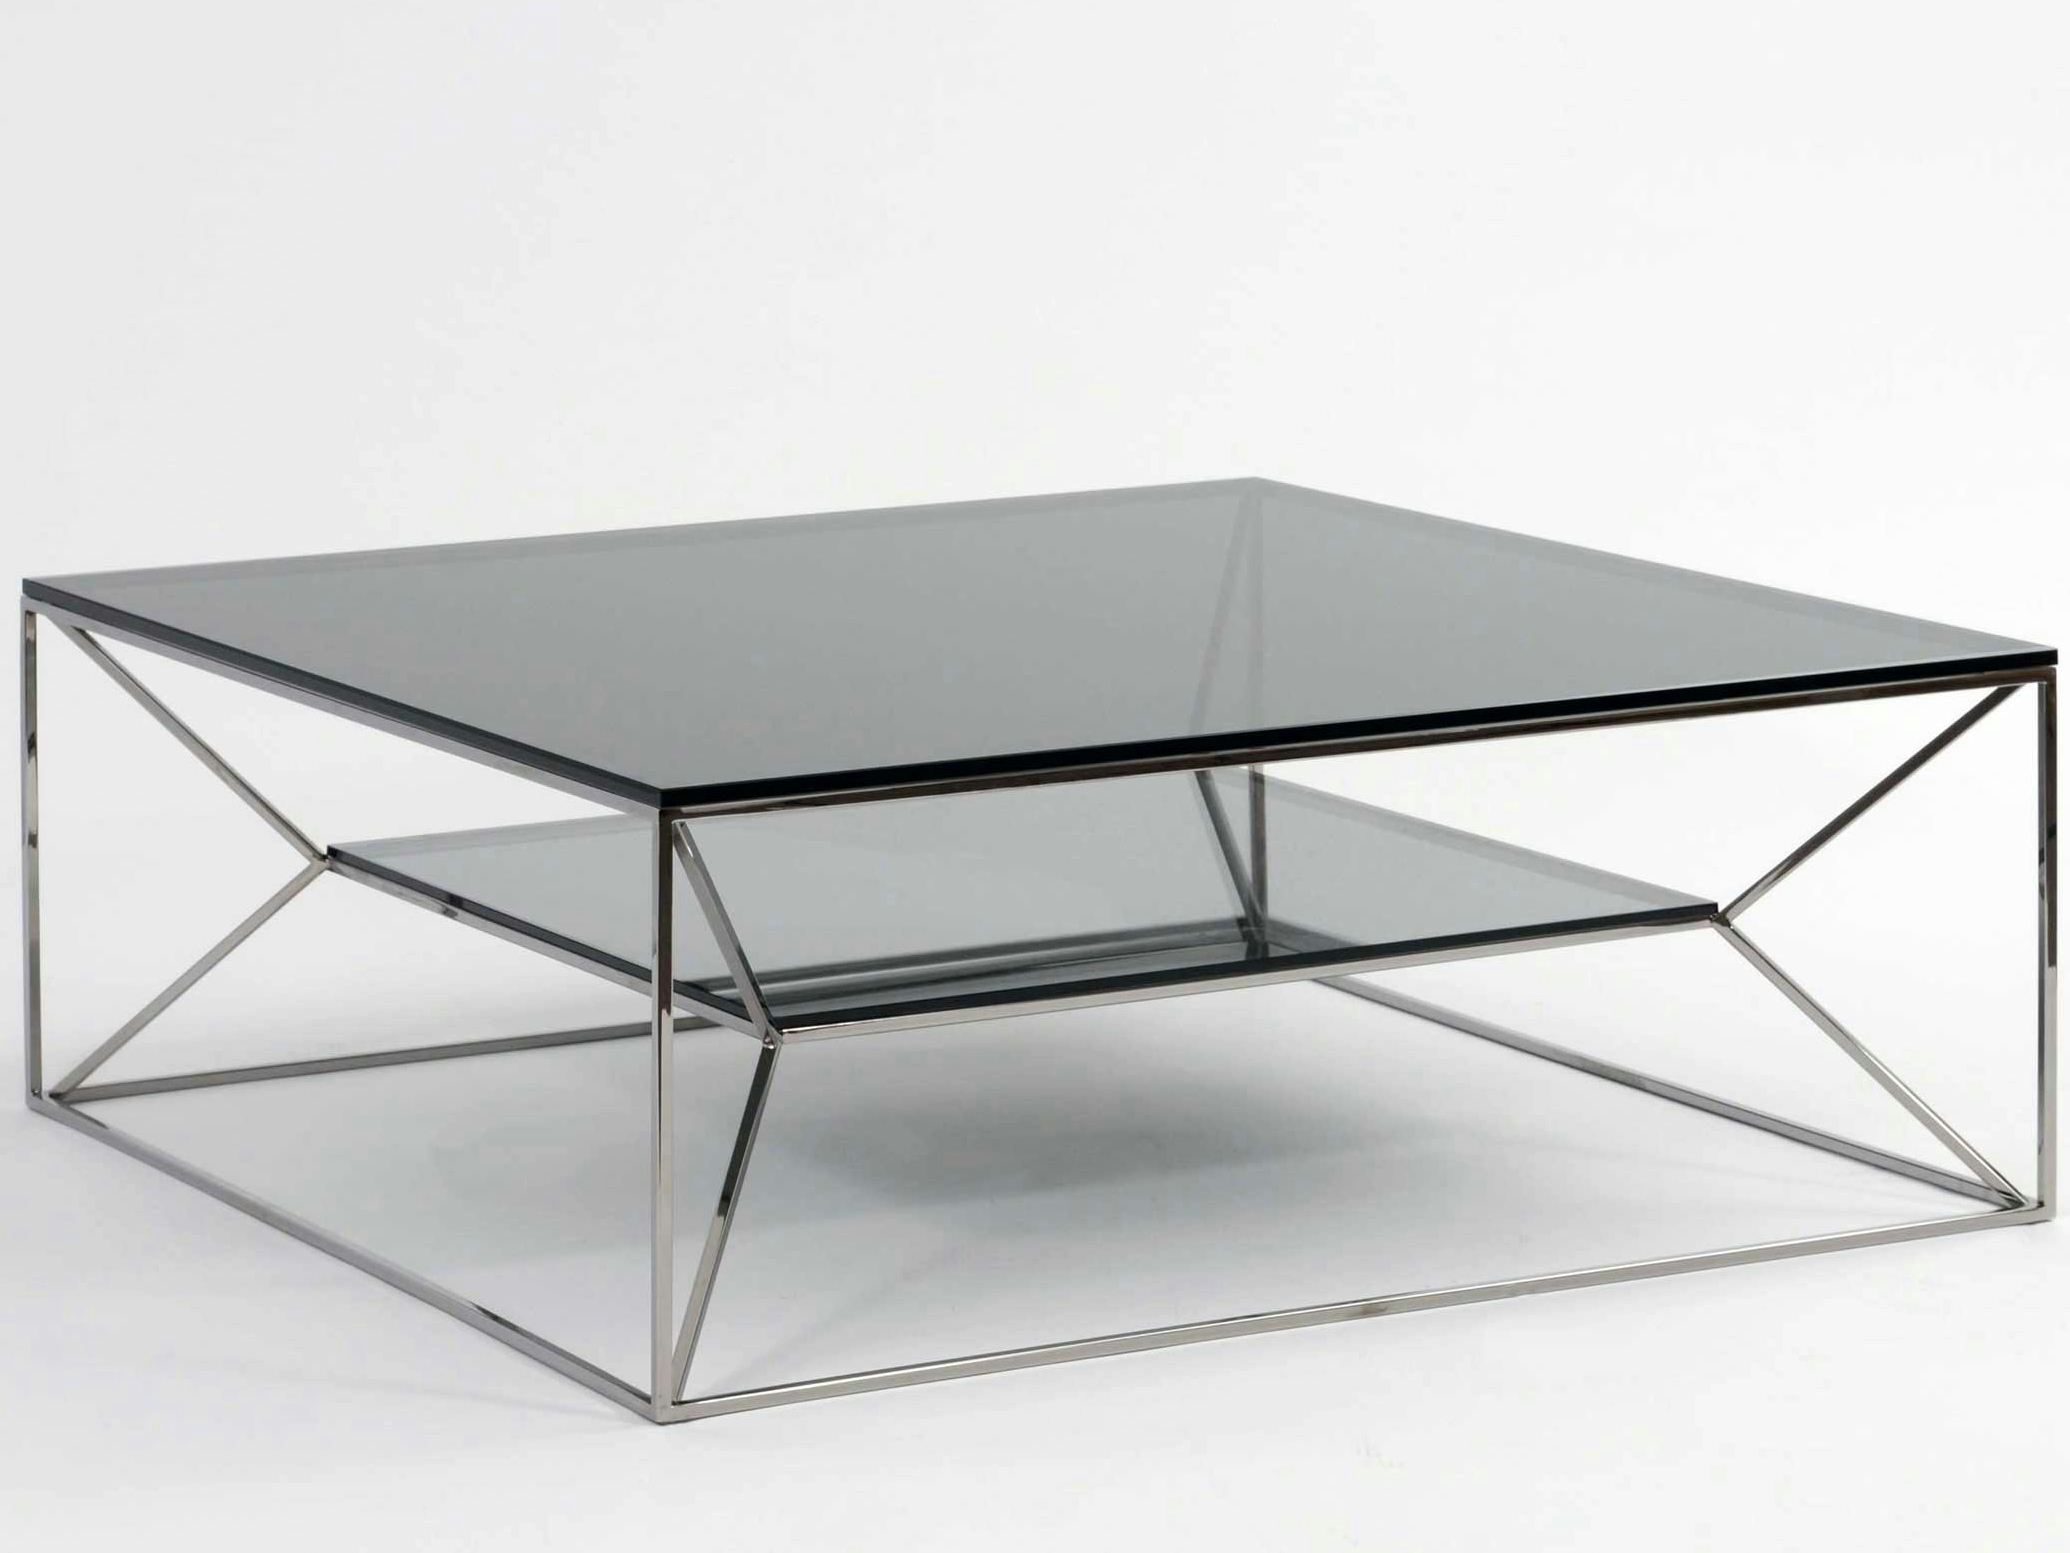 tribeca coffee table by roche bobois design sacha lakic. Black Bedroom Furniture Sets. Home Design Ideas